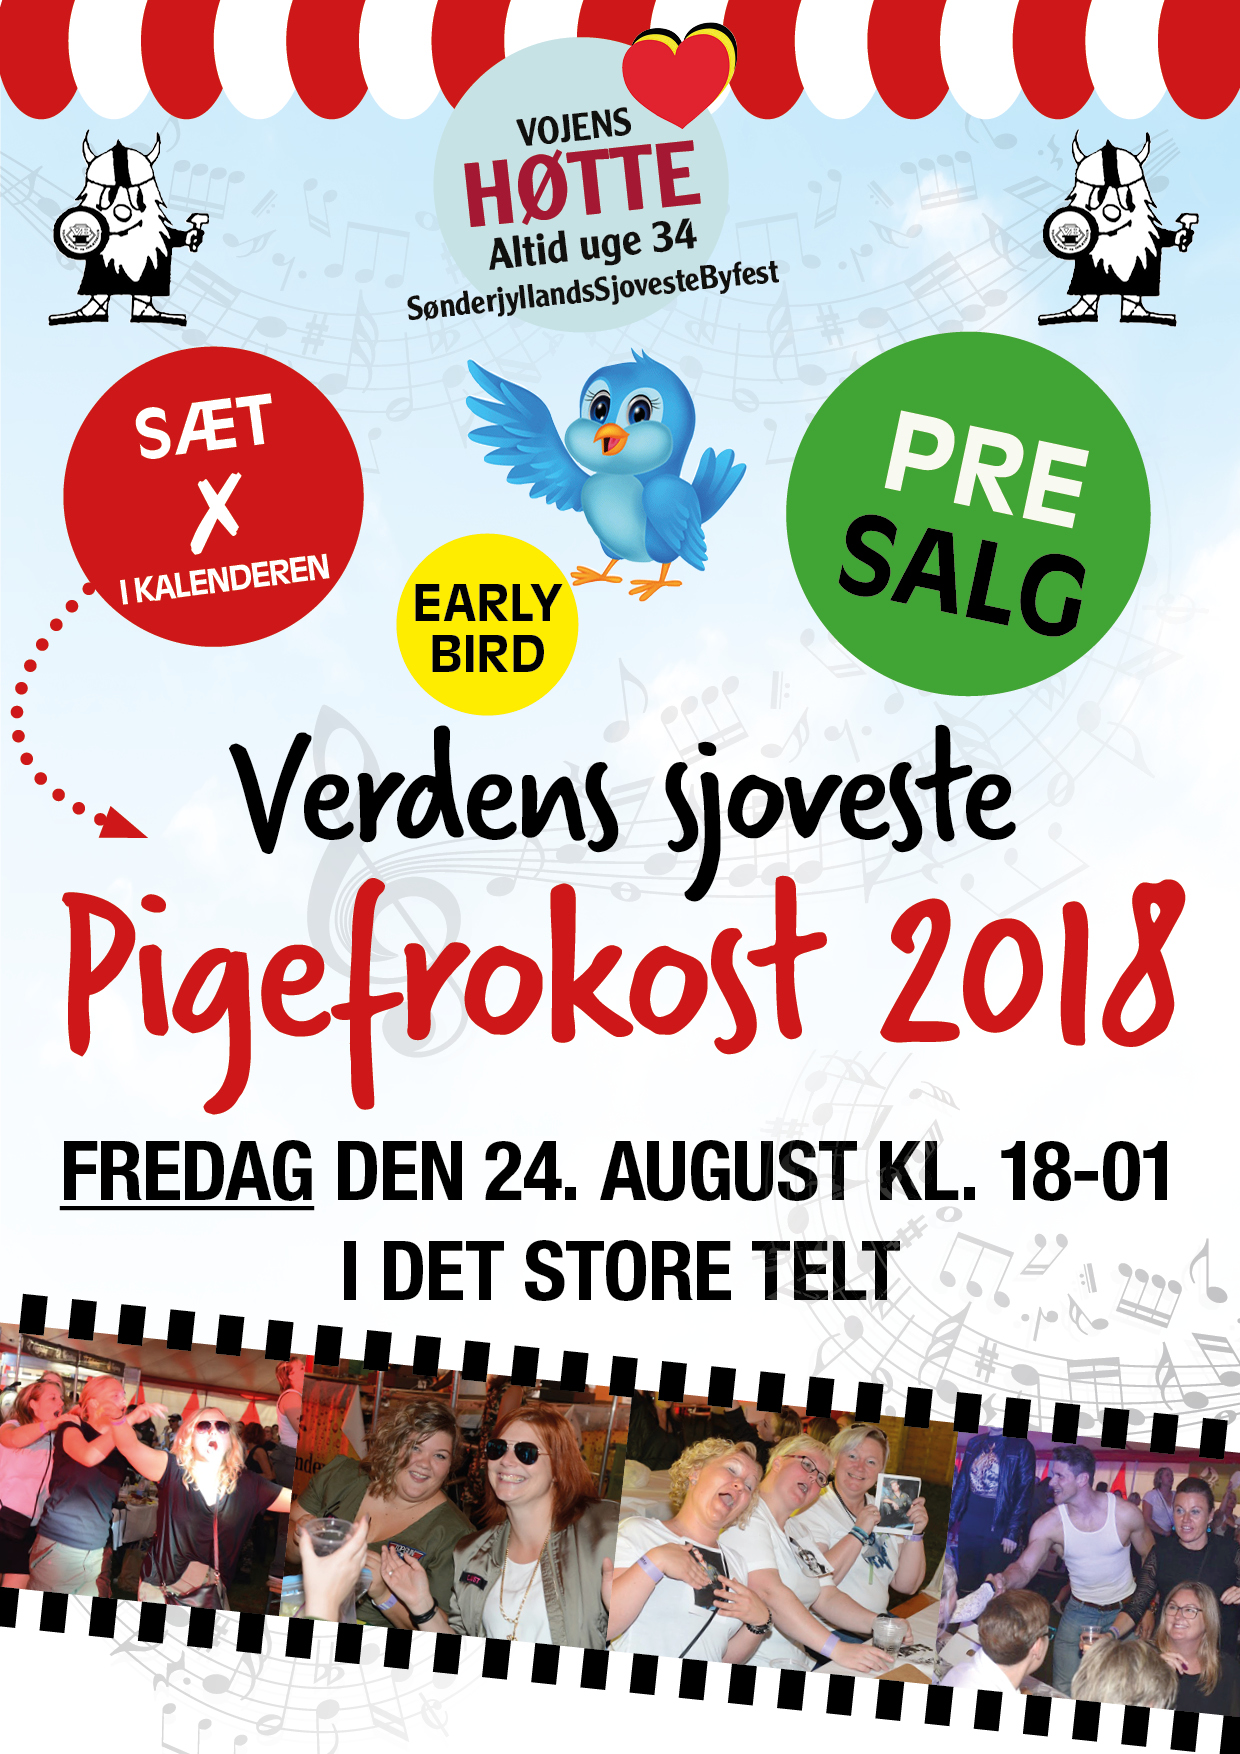 pigefrokost early bird fredag